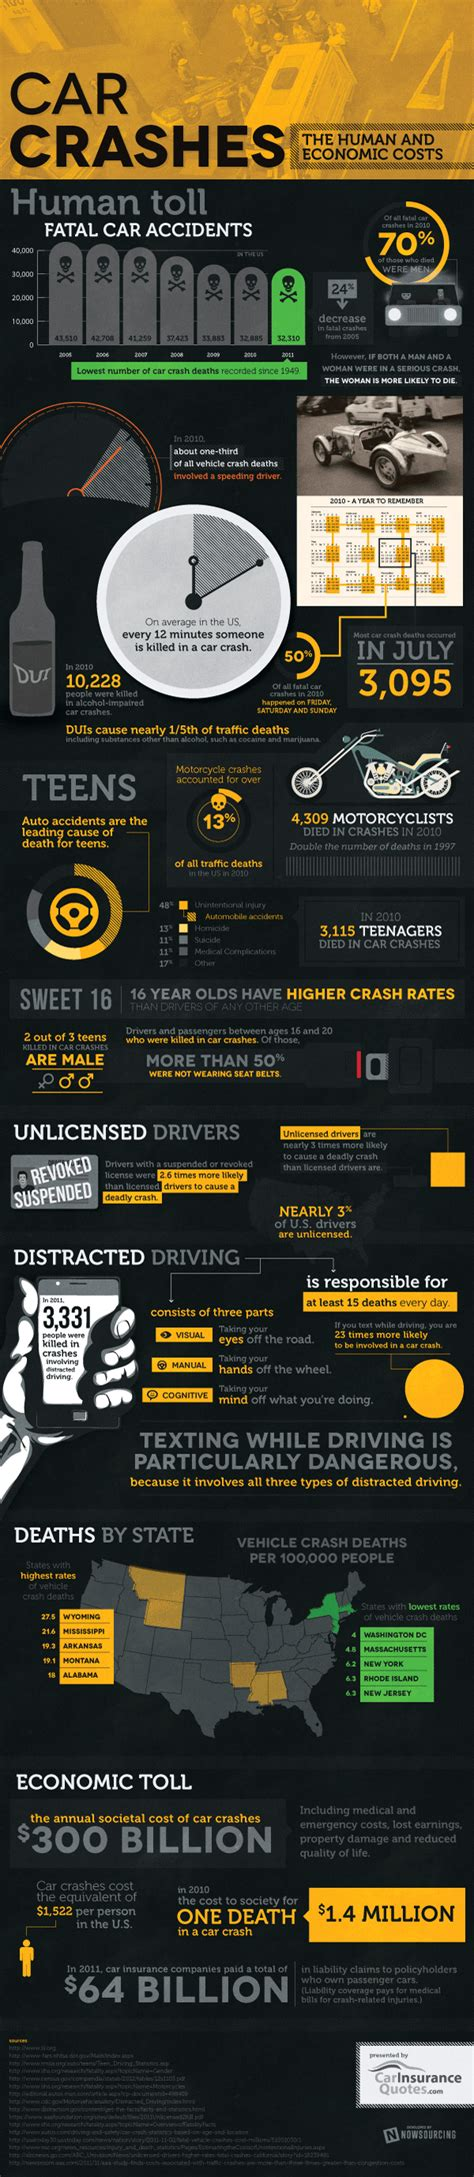 The Human and Economic Toll of Car Crashes [Infographic]